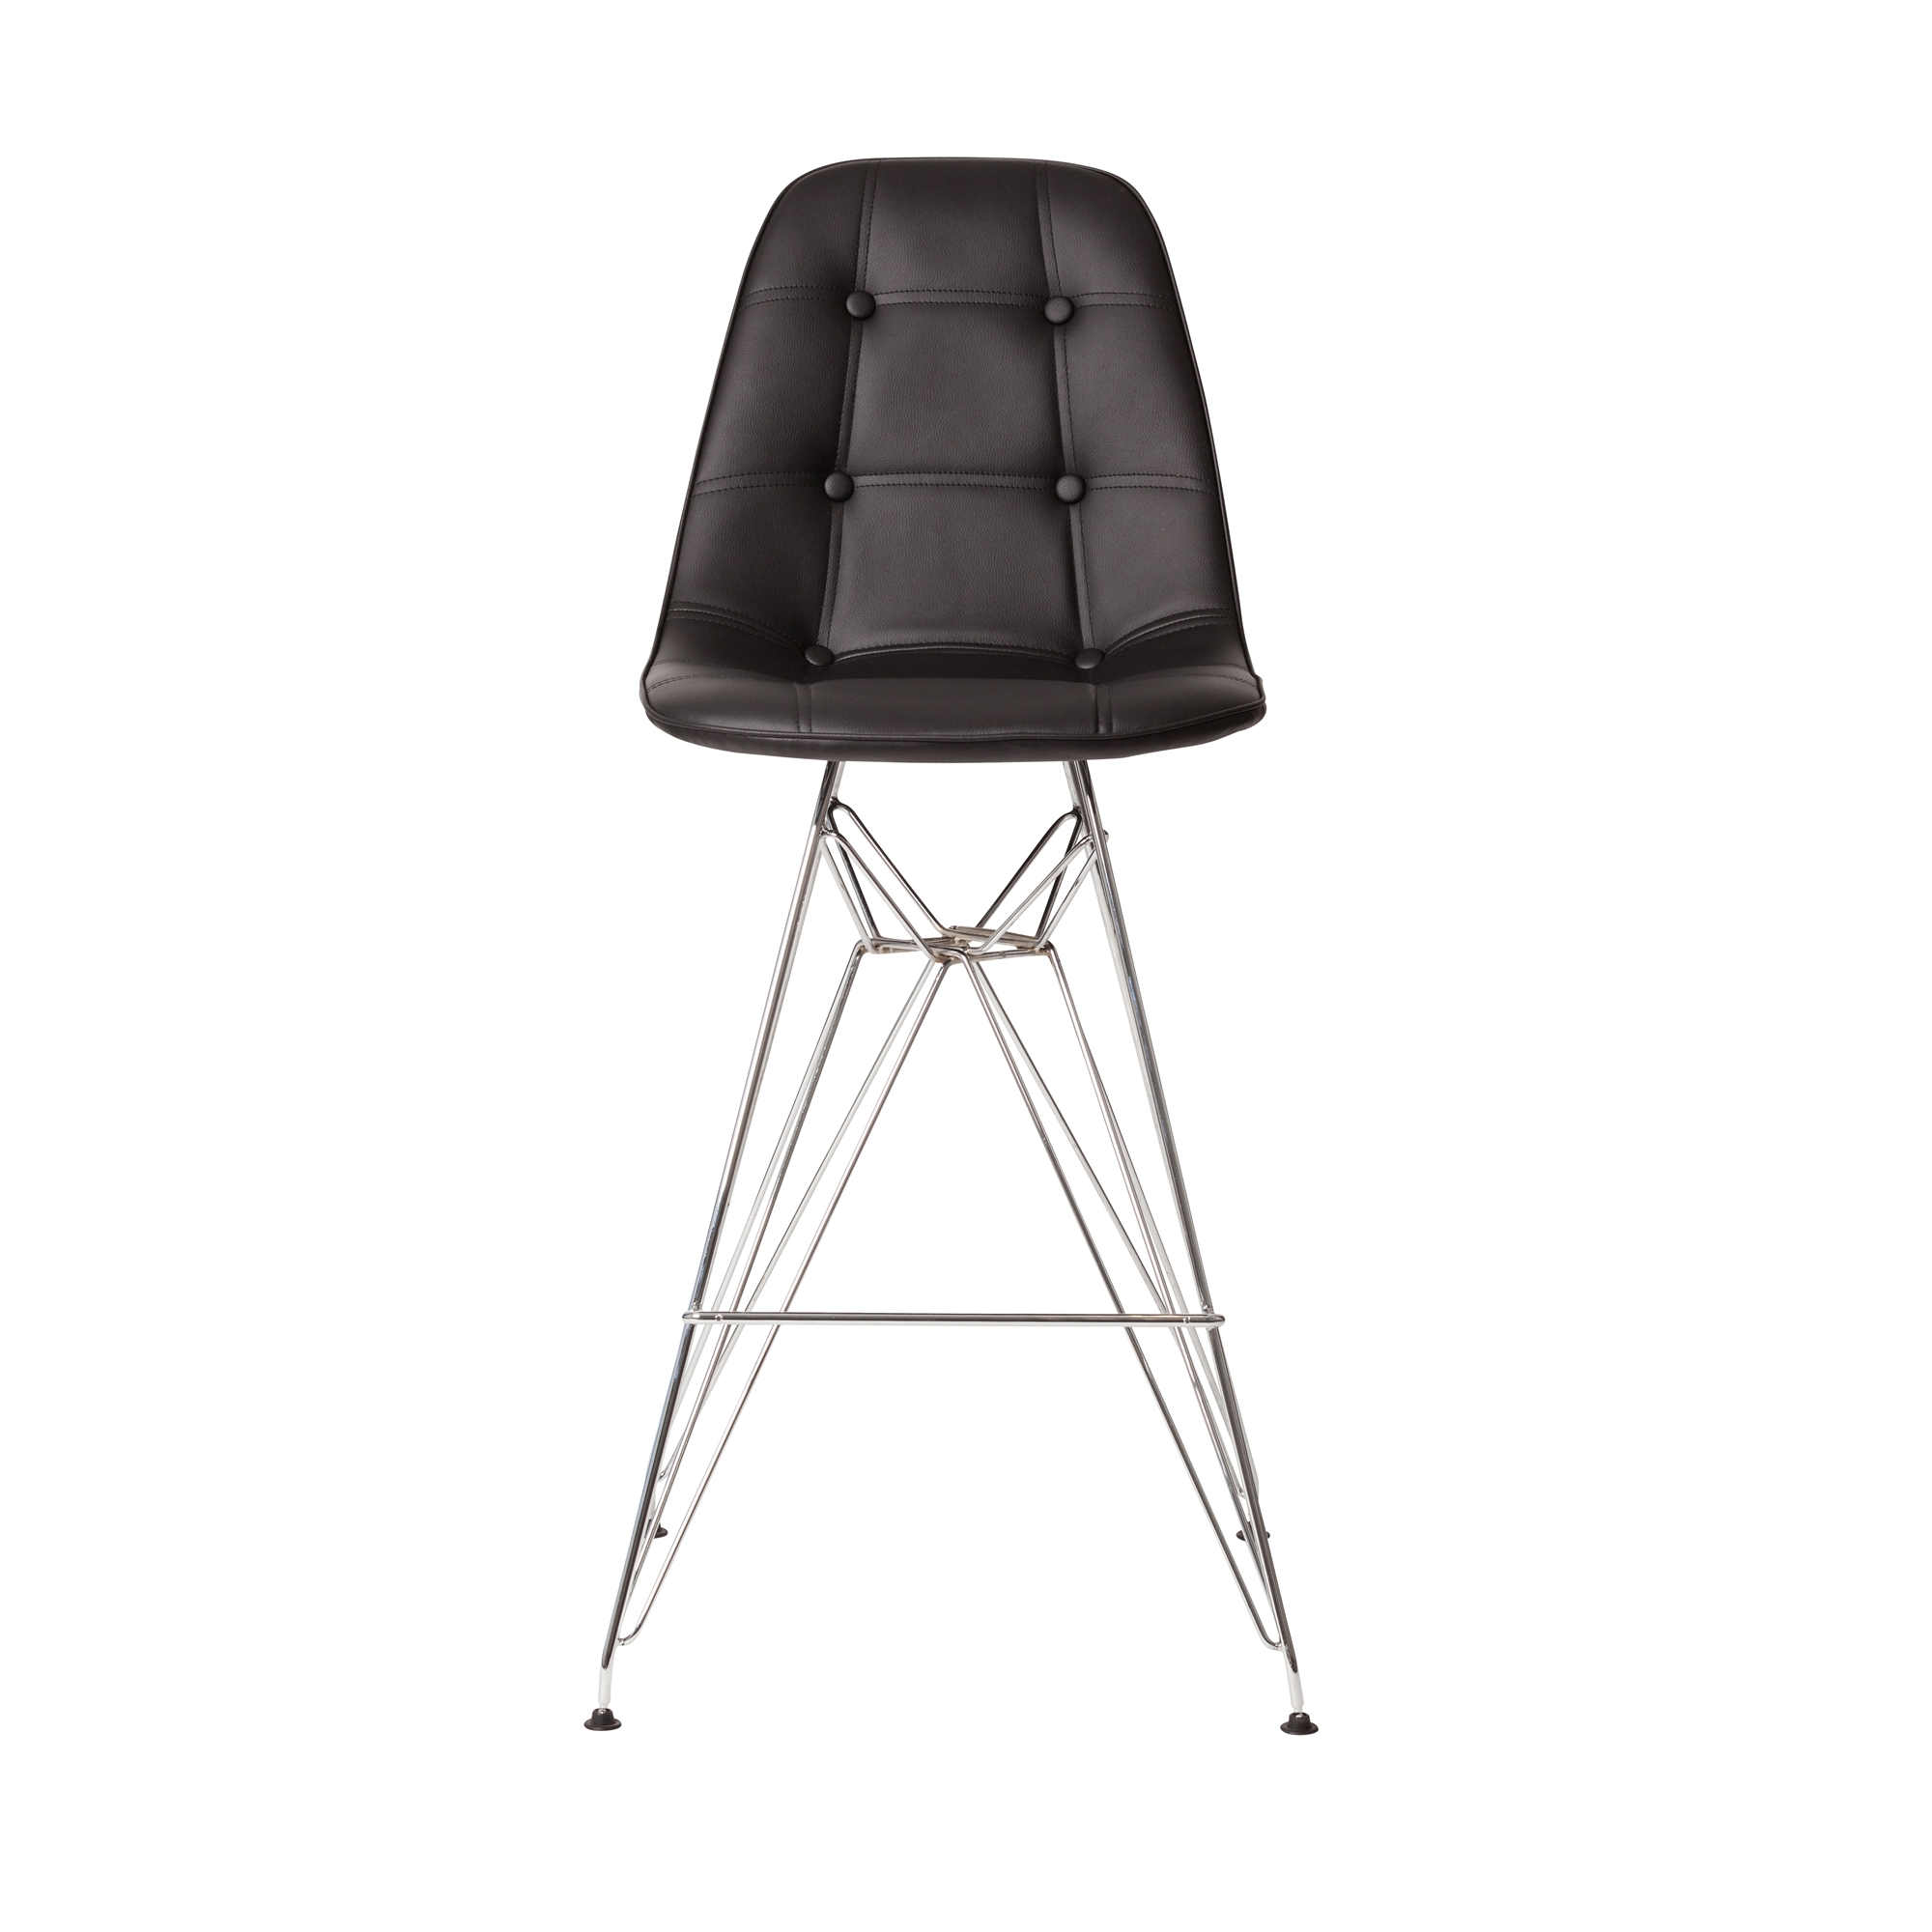 Miraculous Chrome Counter Stool In Black Leather Andrewgaddart Wooden Chair Designs For Living Room Andrewgaddartcom